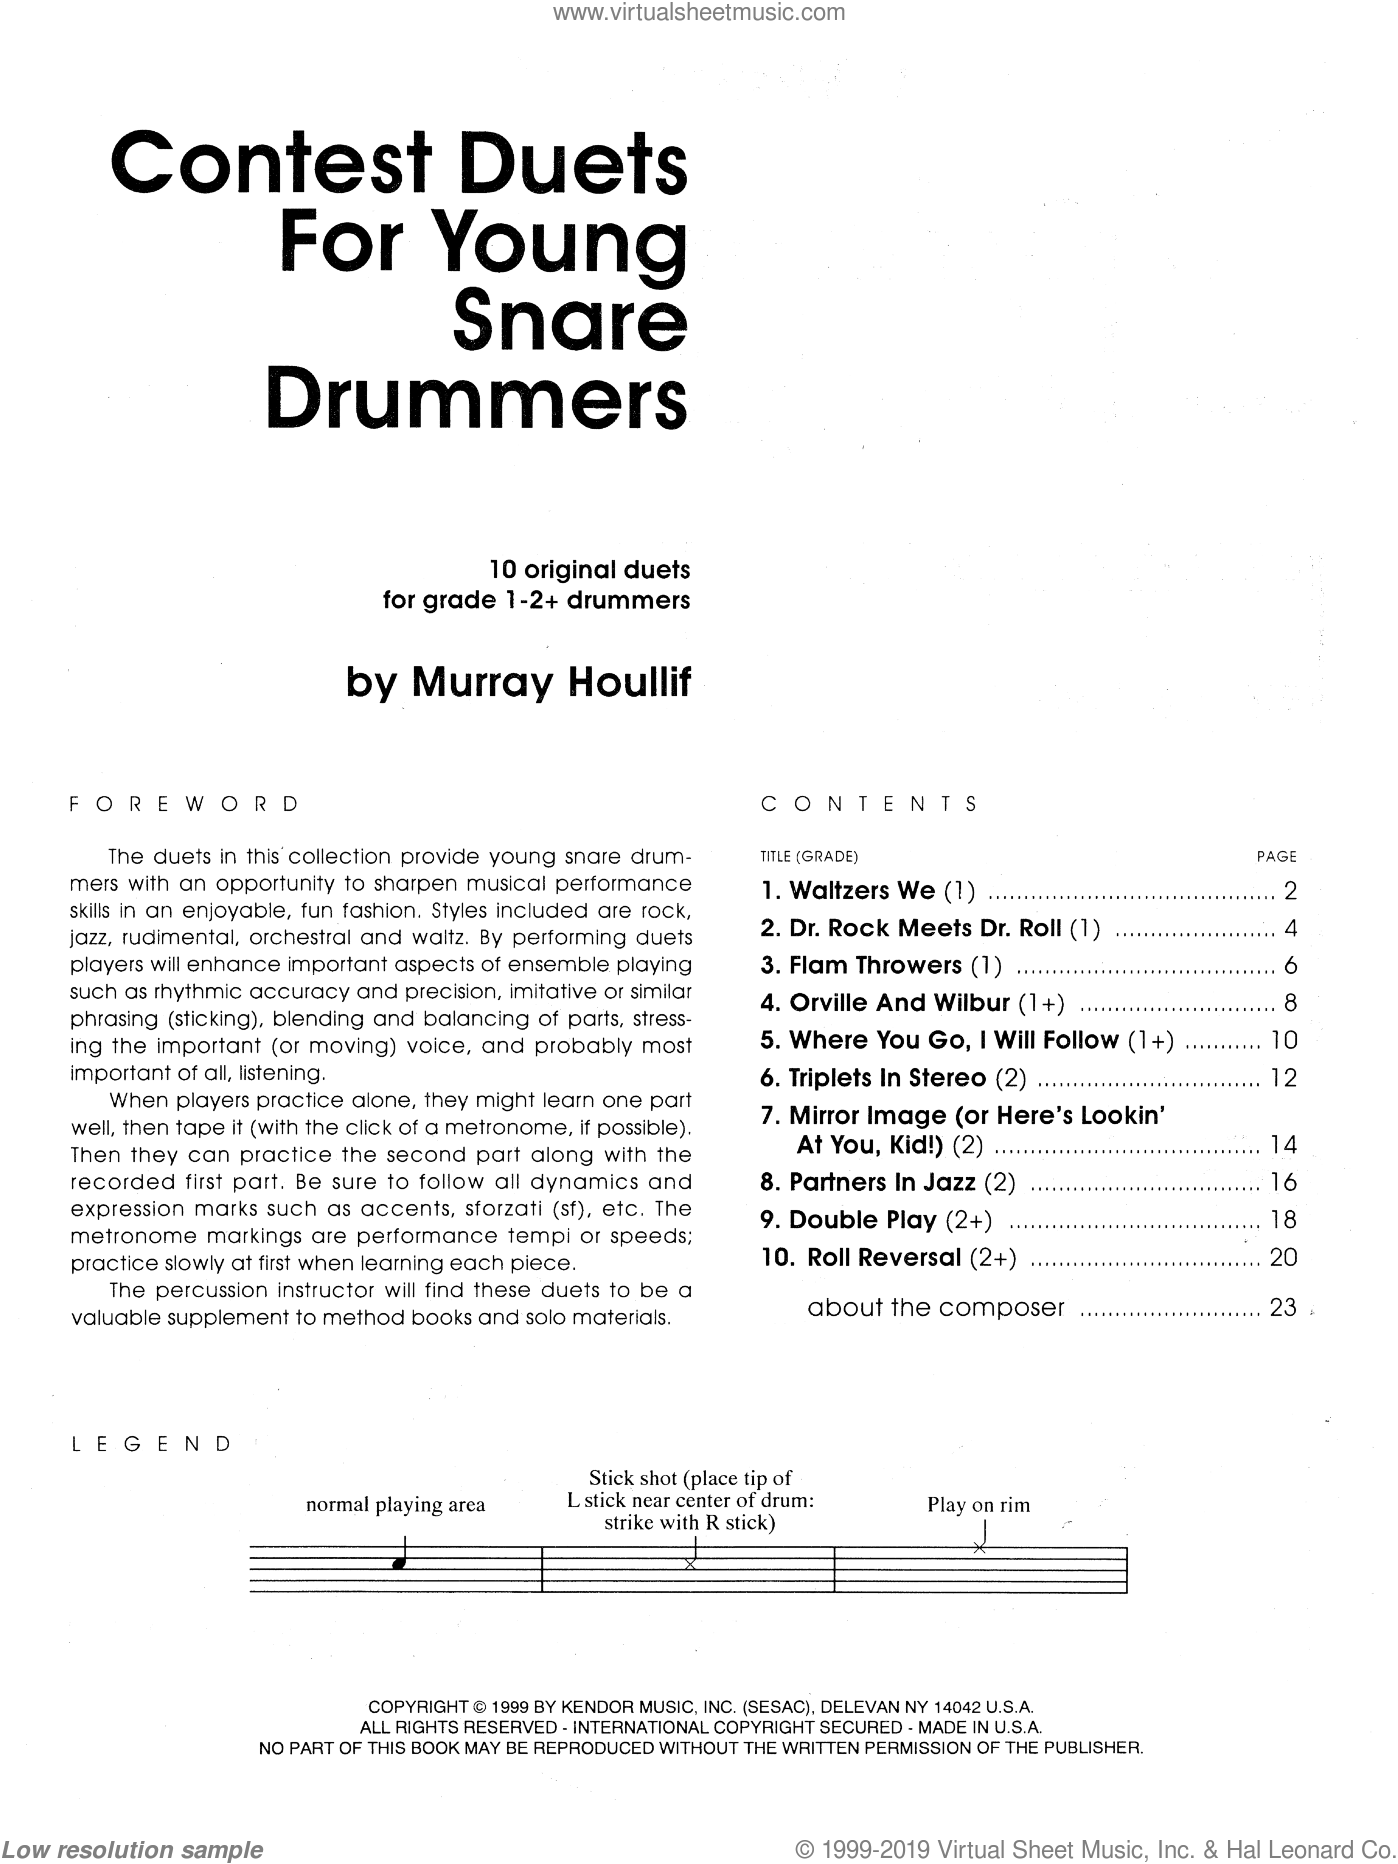 Contest Duets For Young Snare Drummers sheet music for percussions by Houllif. Score Image Preview.